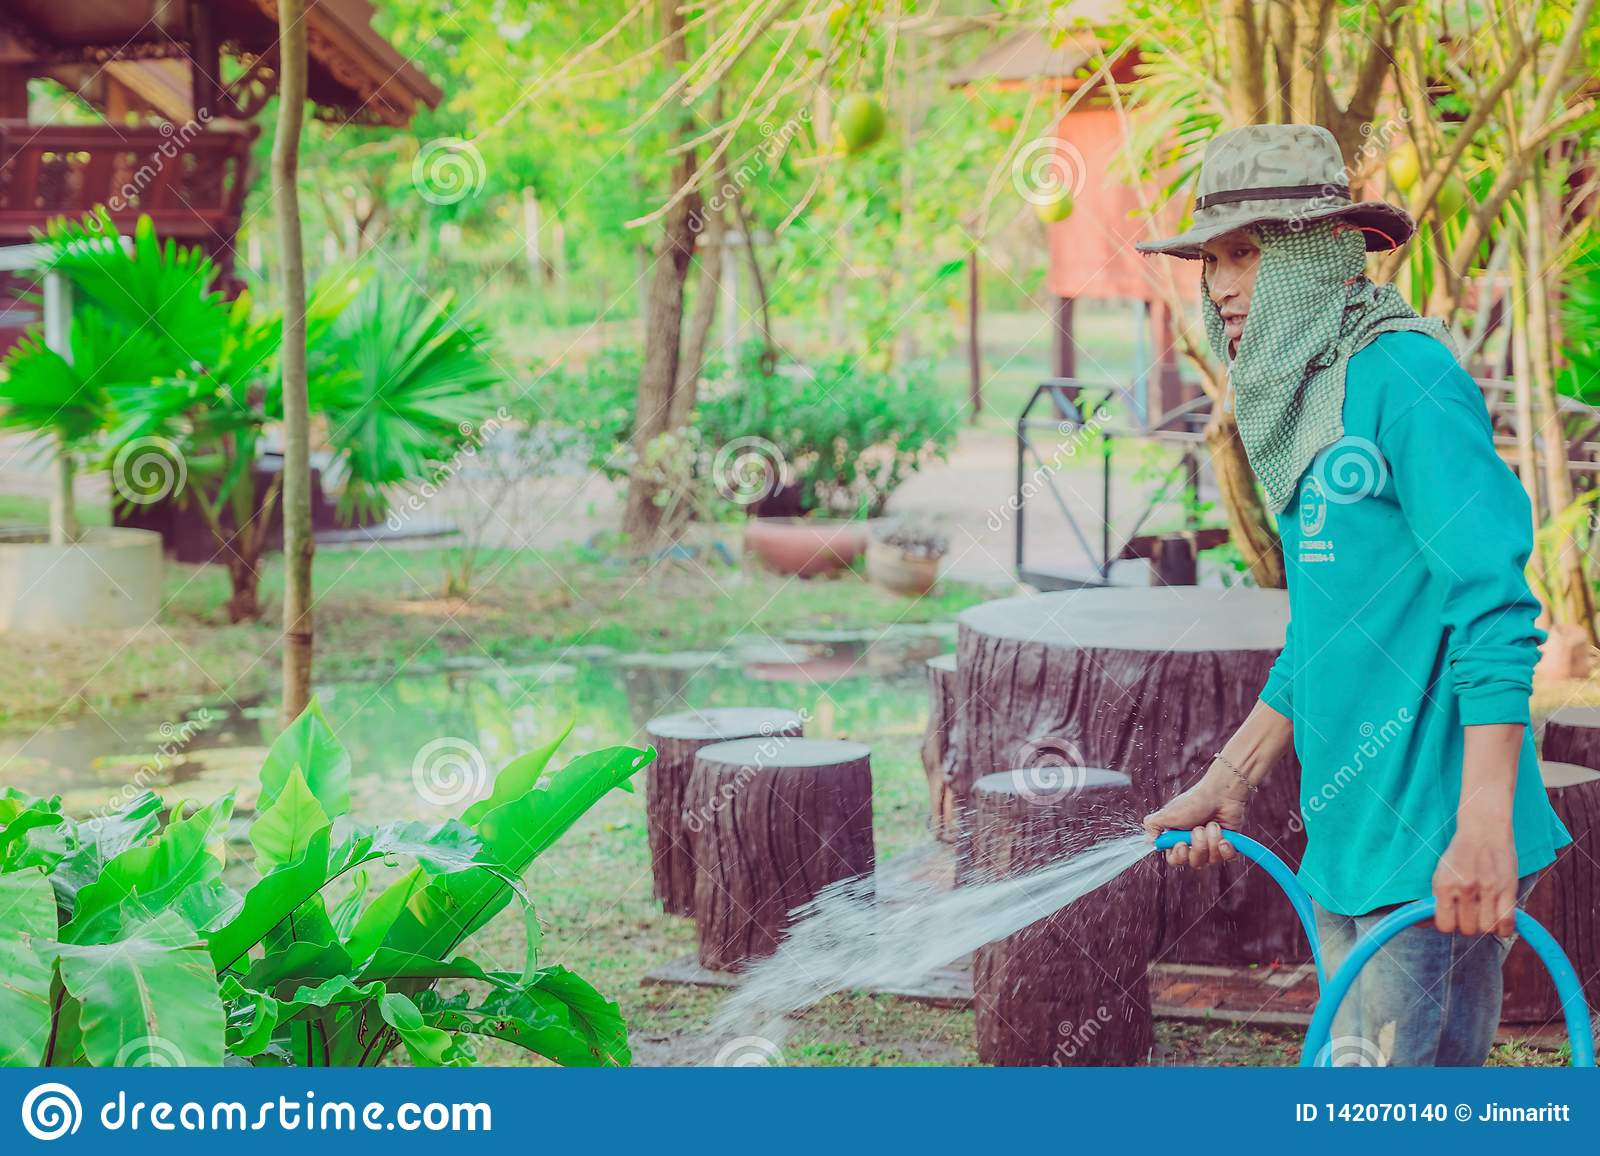 KANCHANABURI-THAILAND, March 2, 2019 : Unidentified Senior man watering plants with hose and working in garden at his home on